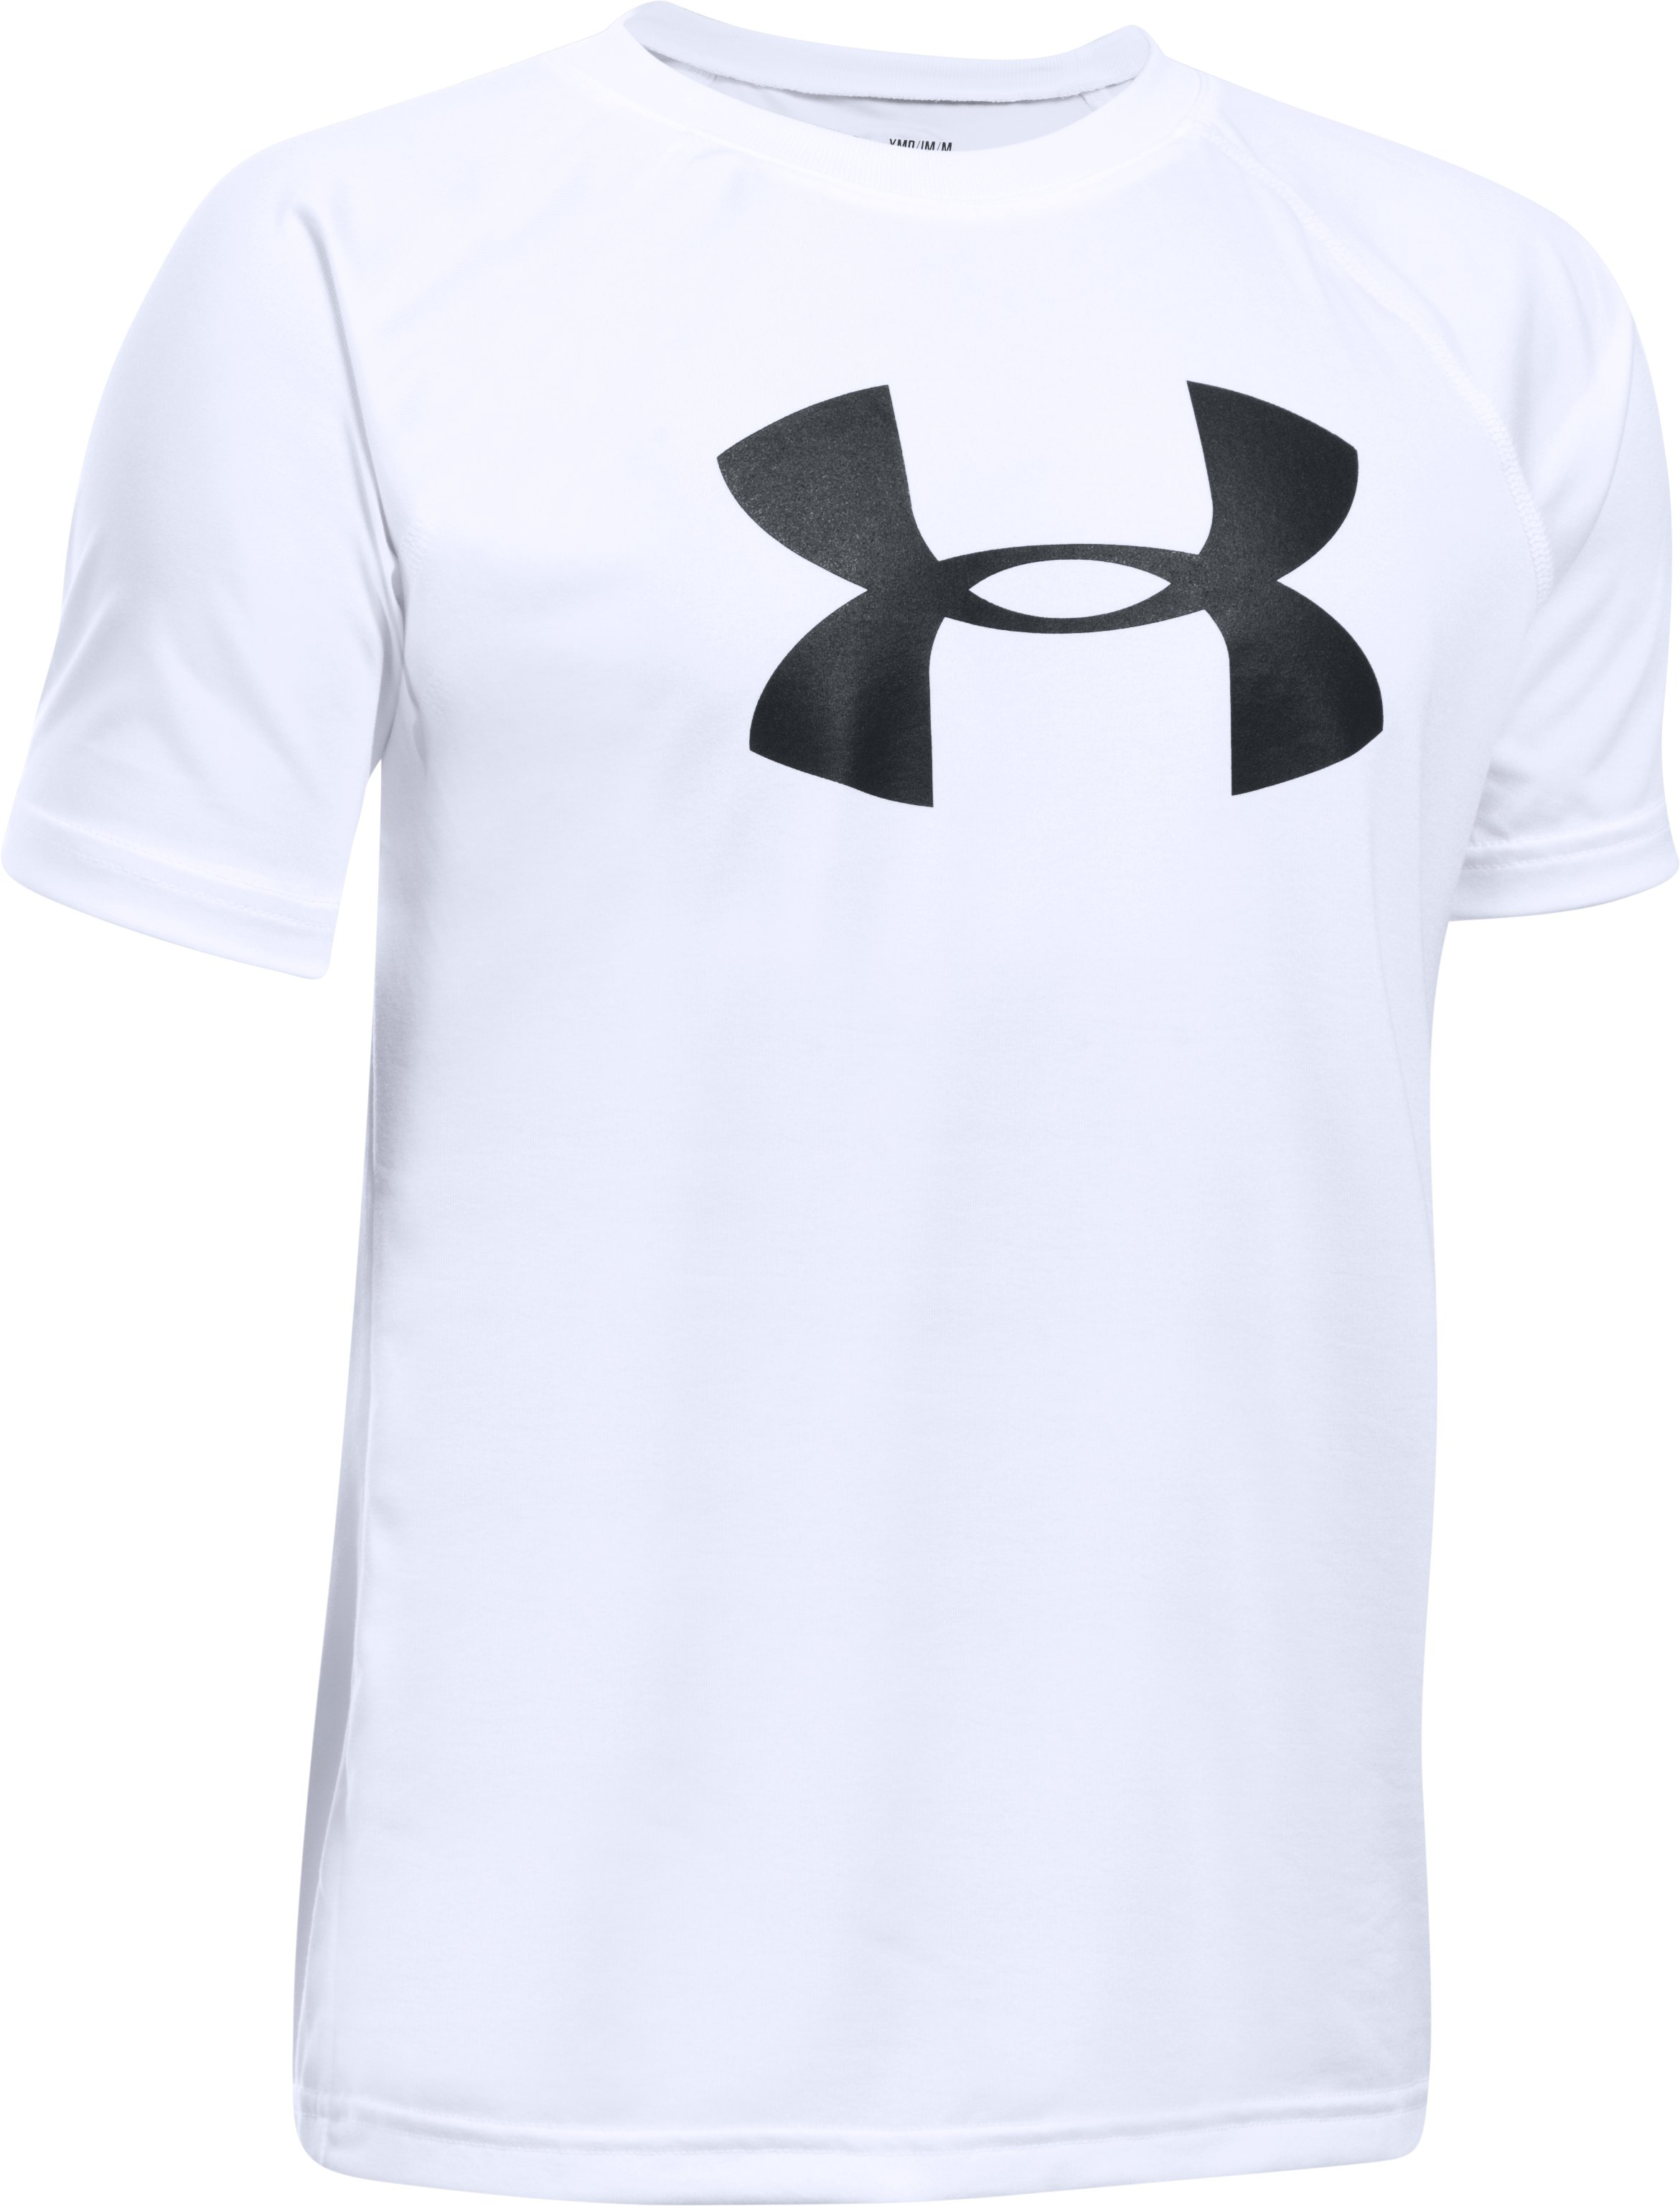 Boys' UA Tech Big Logo T-Shirt, White